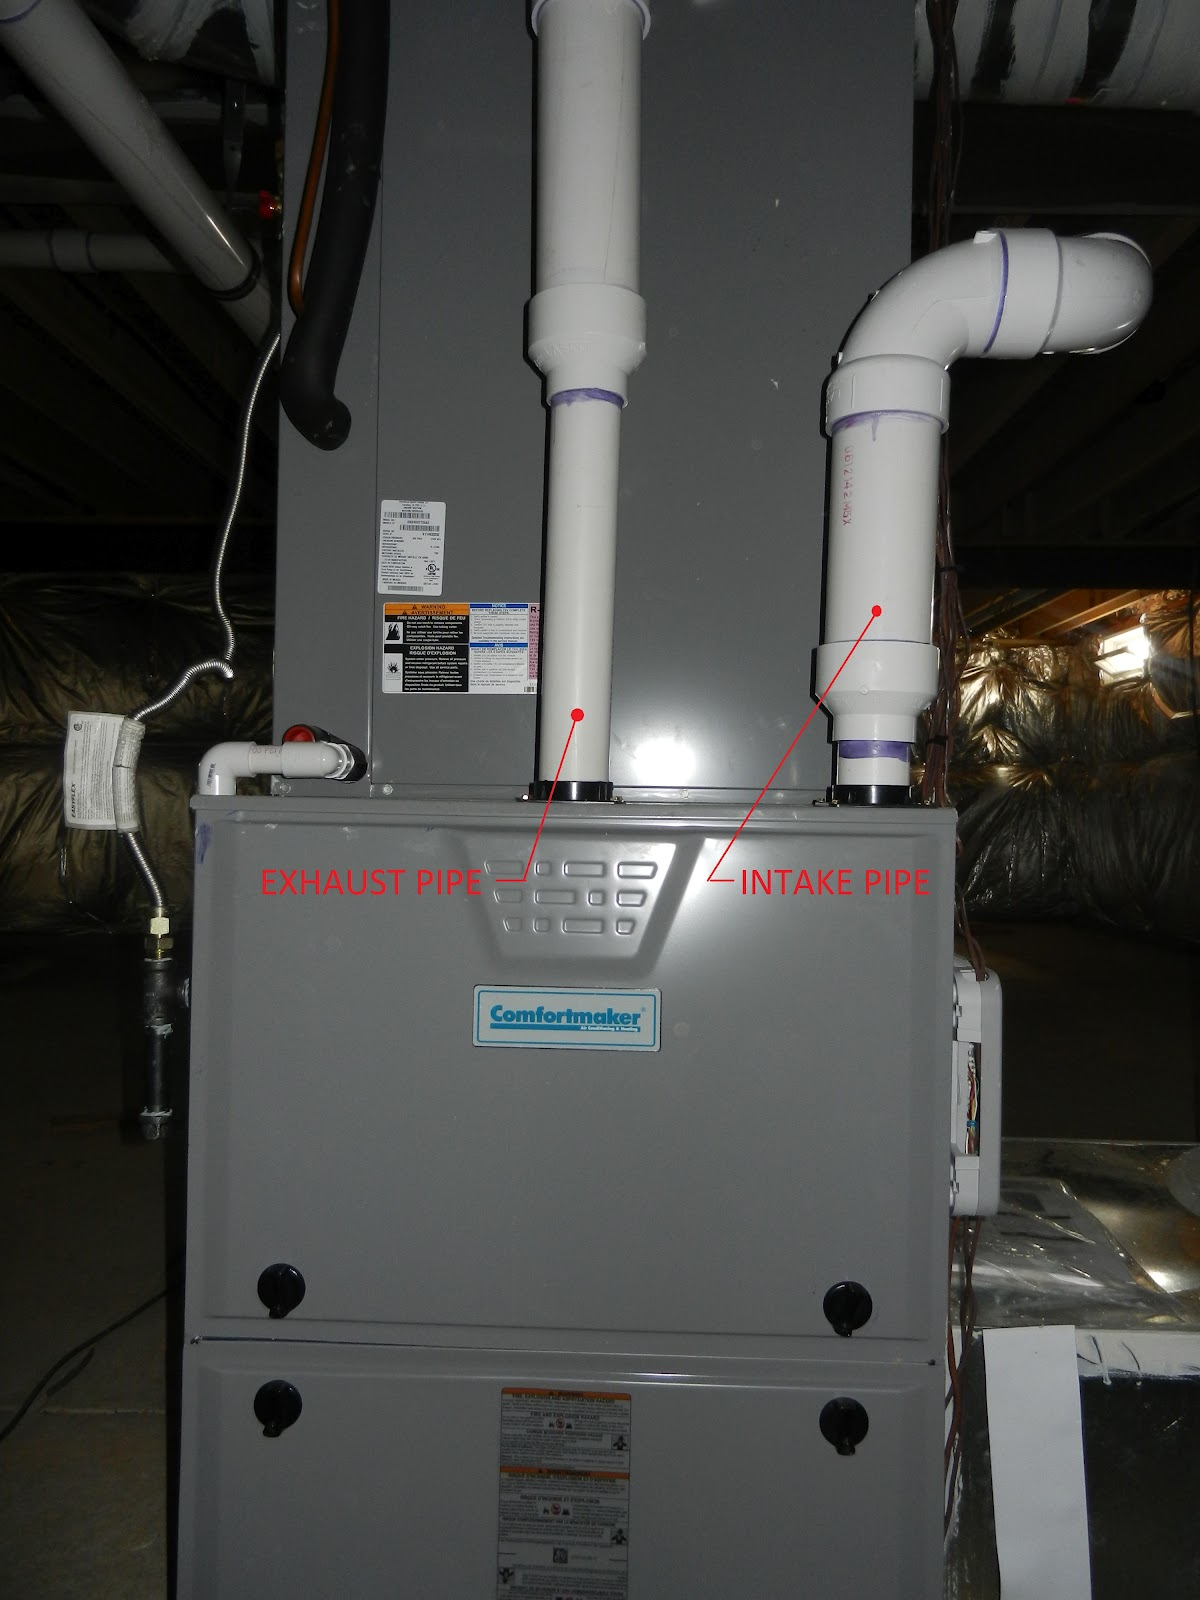 High Efficiency Furnace Venting Diagram Yamaha Blaster Wiring Hvac Intake Pipe Information Moving To The Country